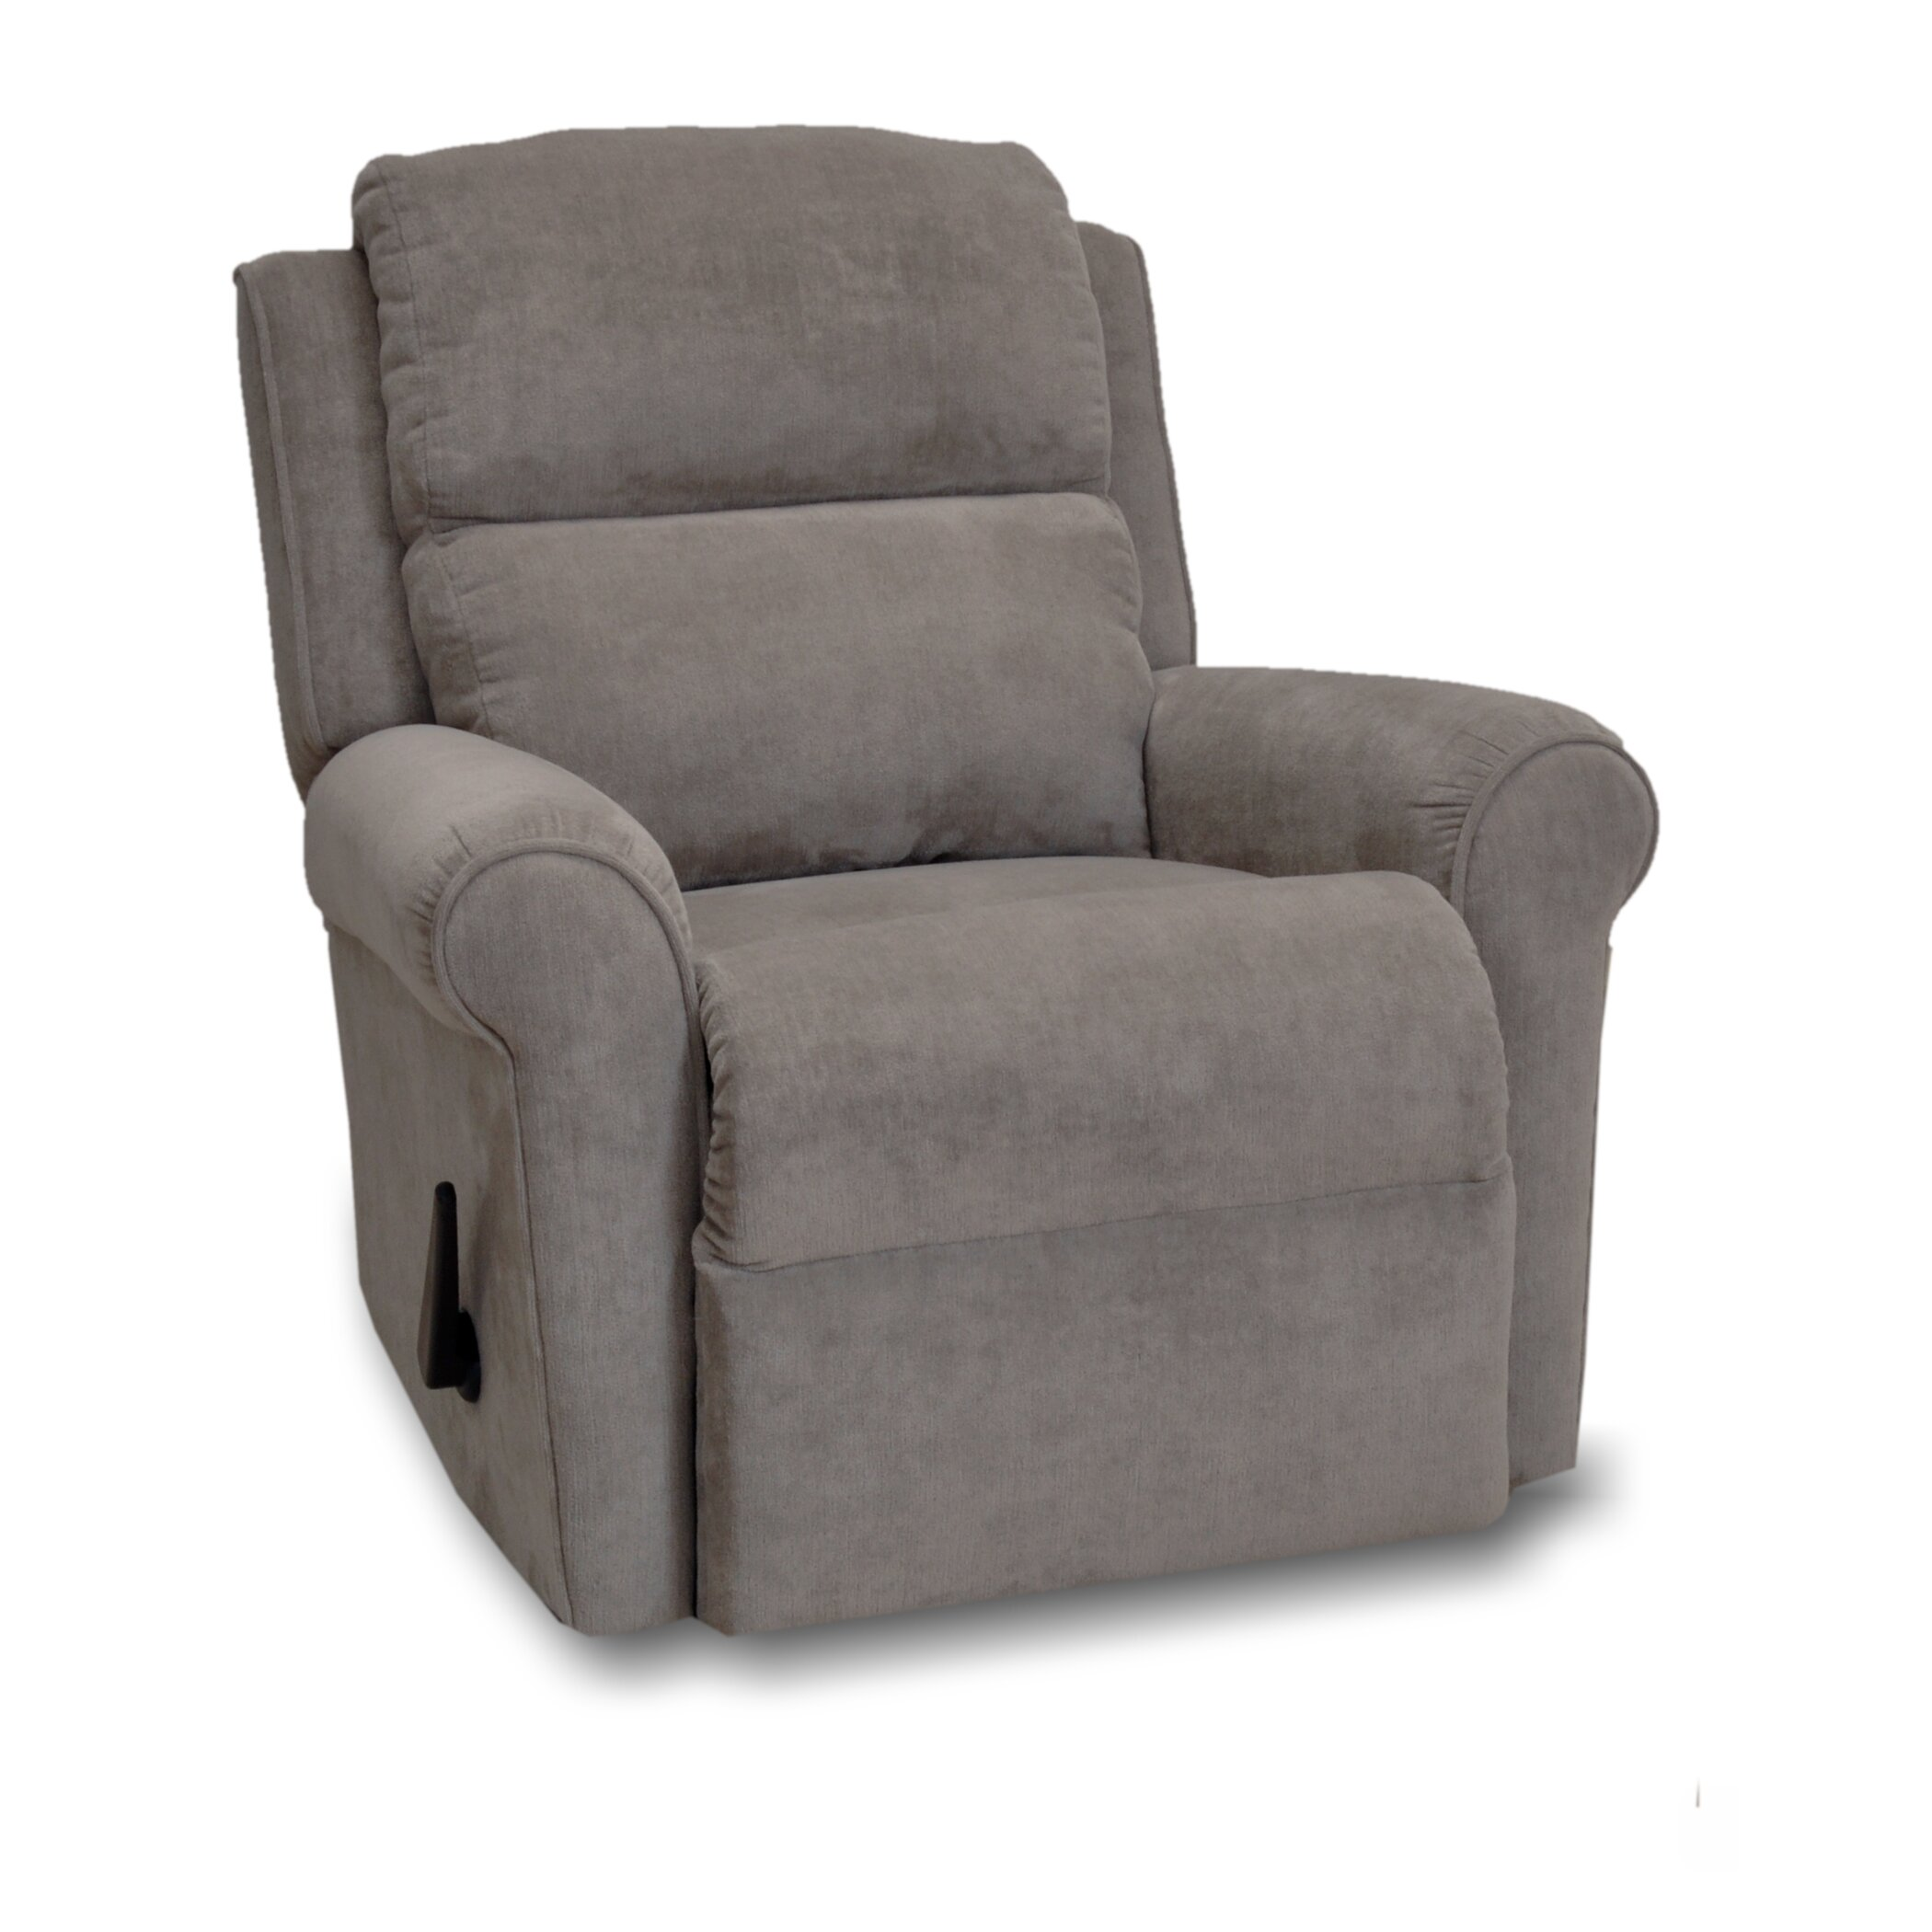 Small Bedroom Recliners Small Apartment Size Recliners Youll Love Wayfair